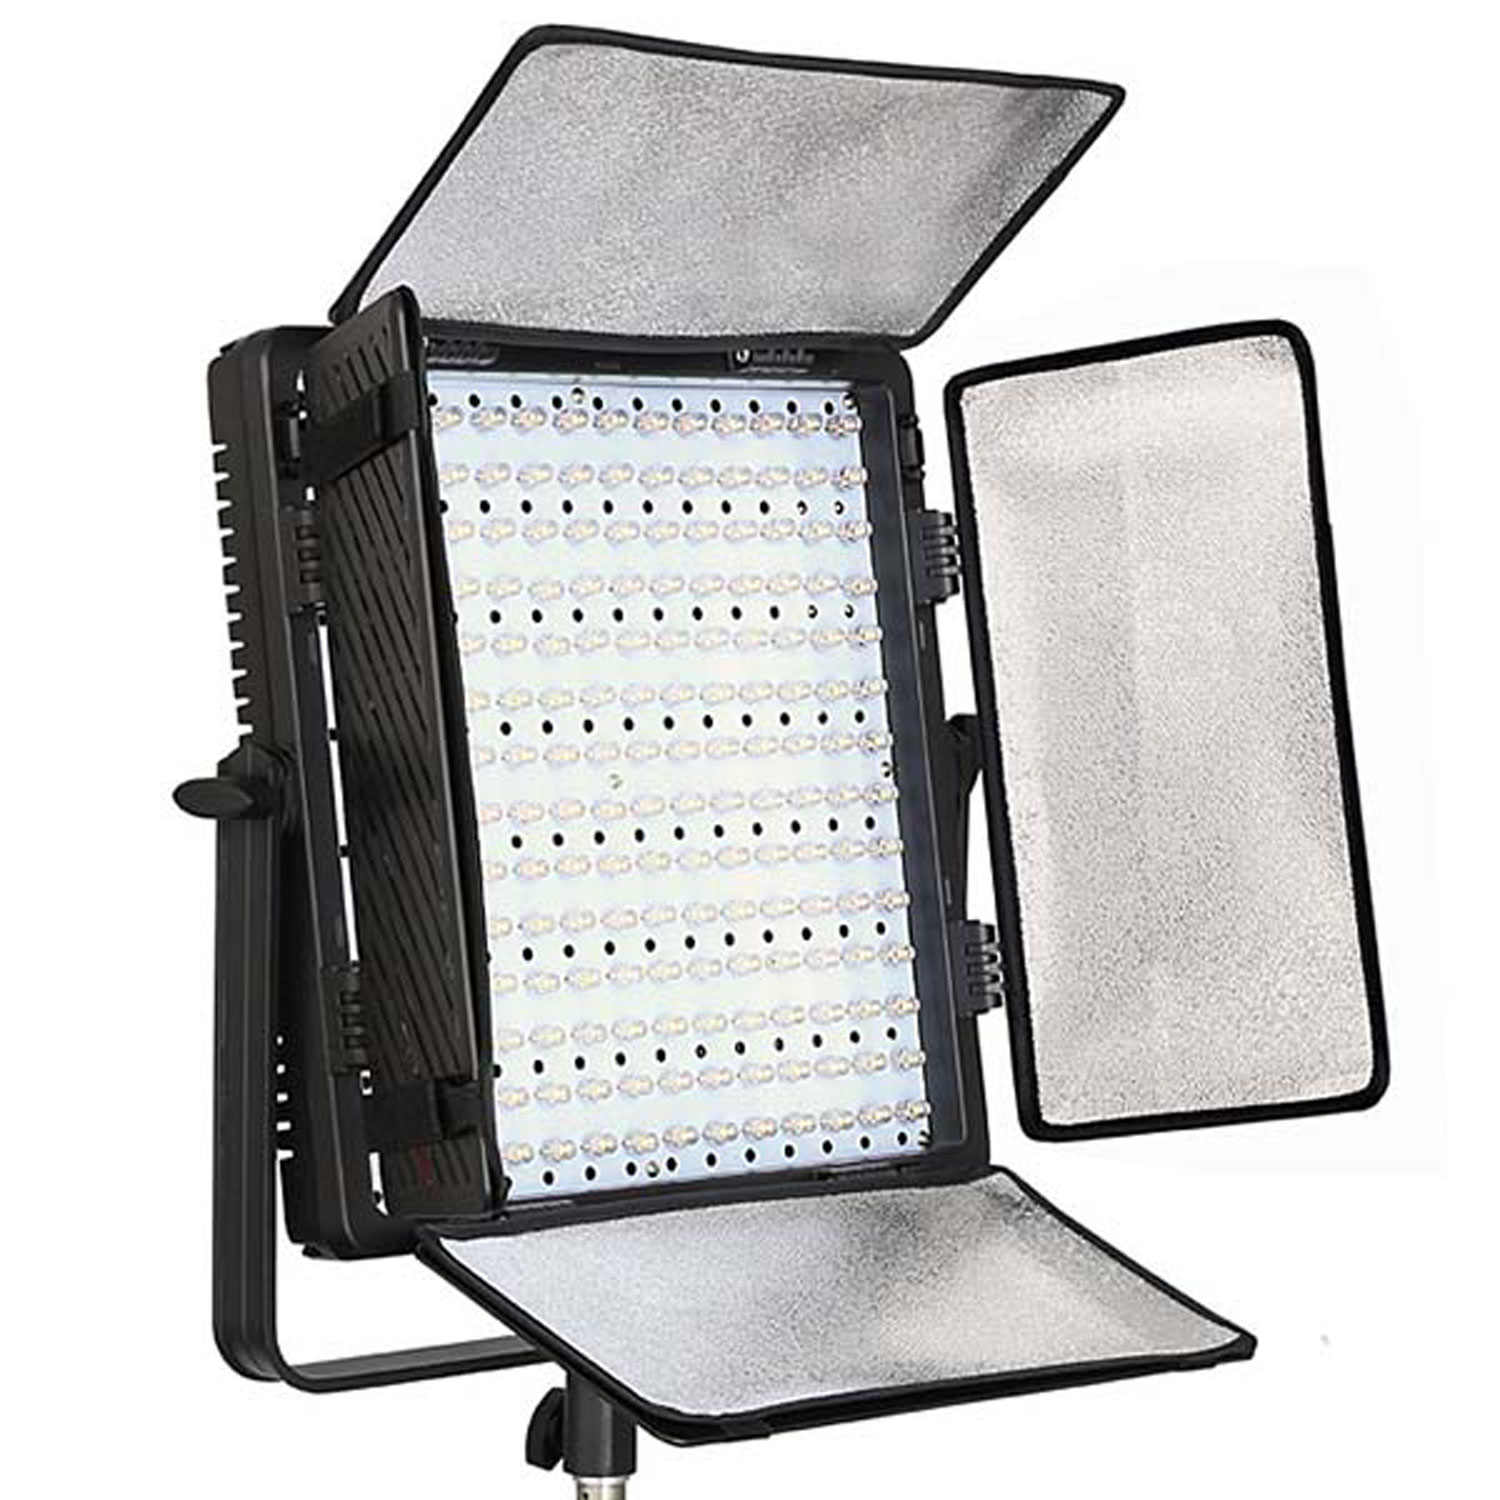 نور ال ای دی VL-8196R متل       Mettle VL-8196R  LED Video Light